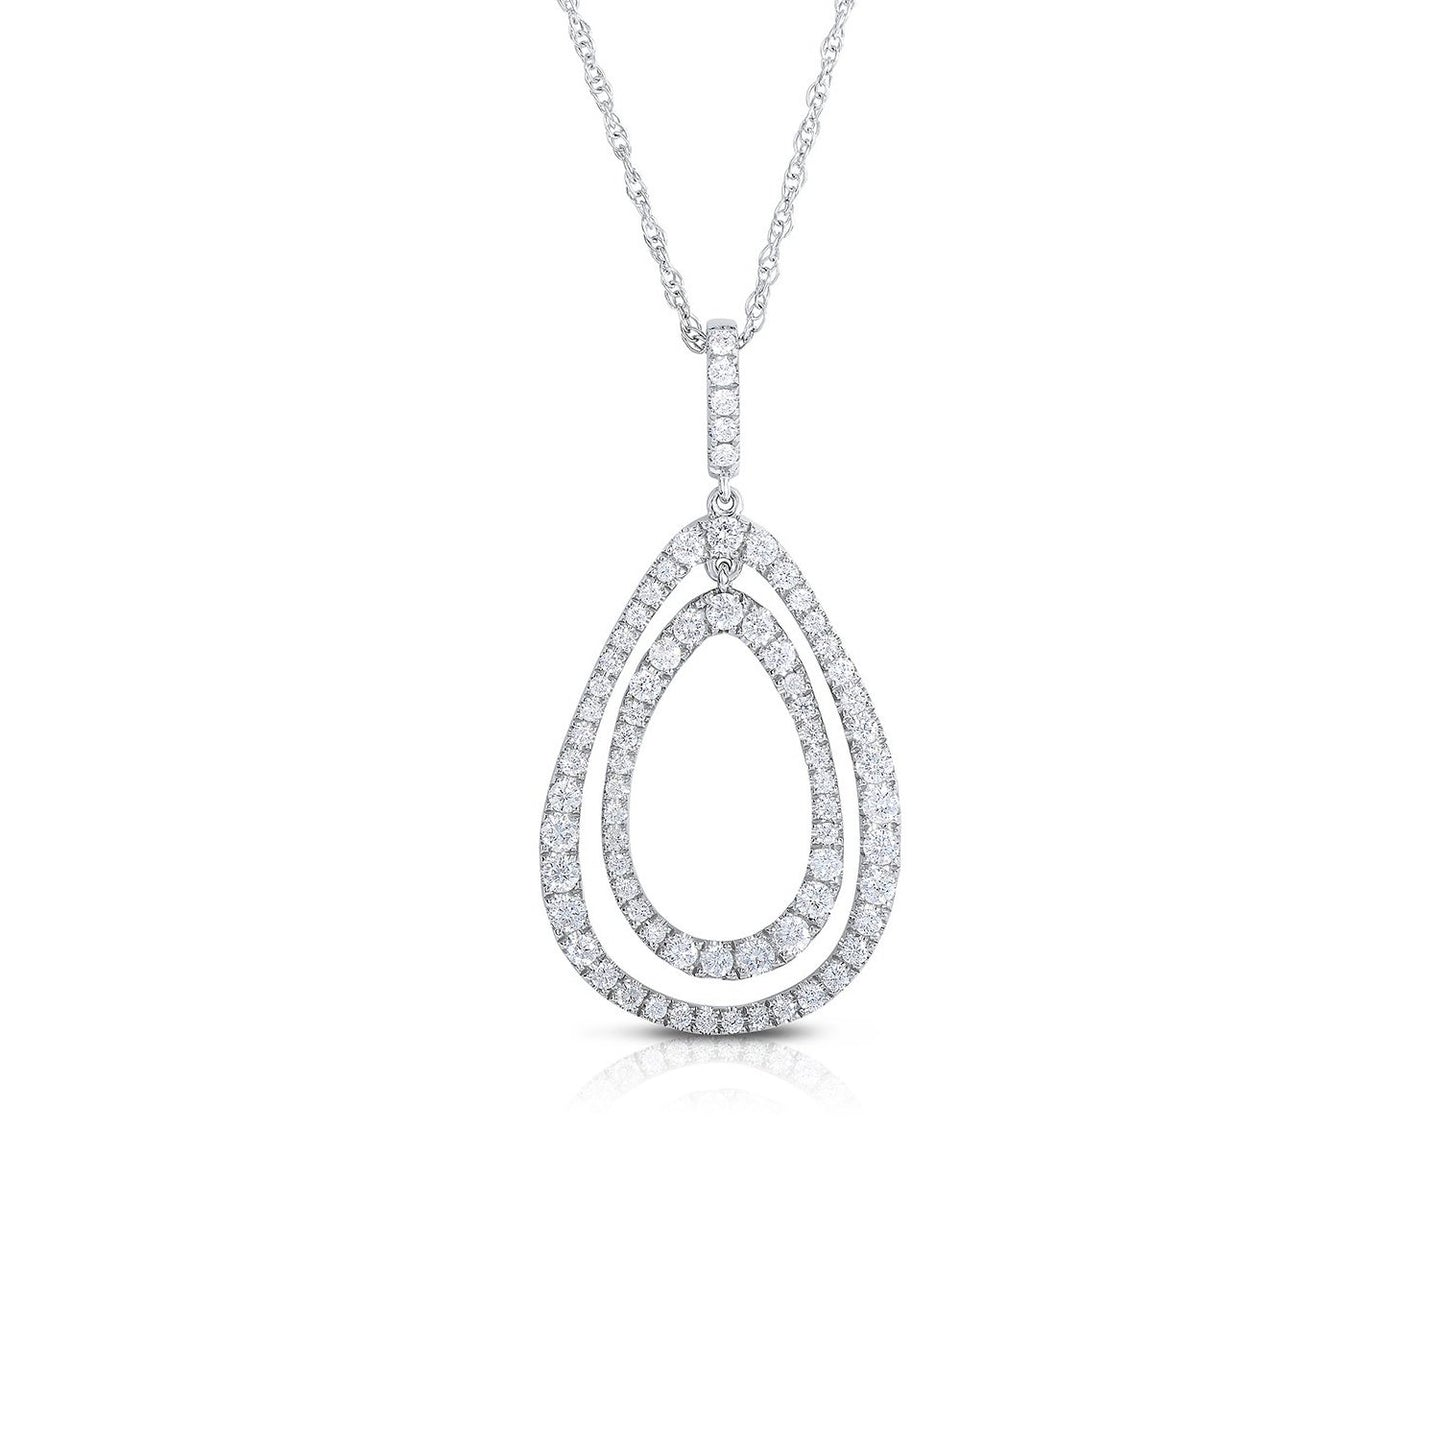 Sabel Collection 14K White Gold Diamond Double Oval Drop Pendant